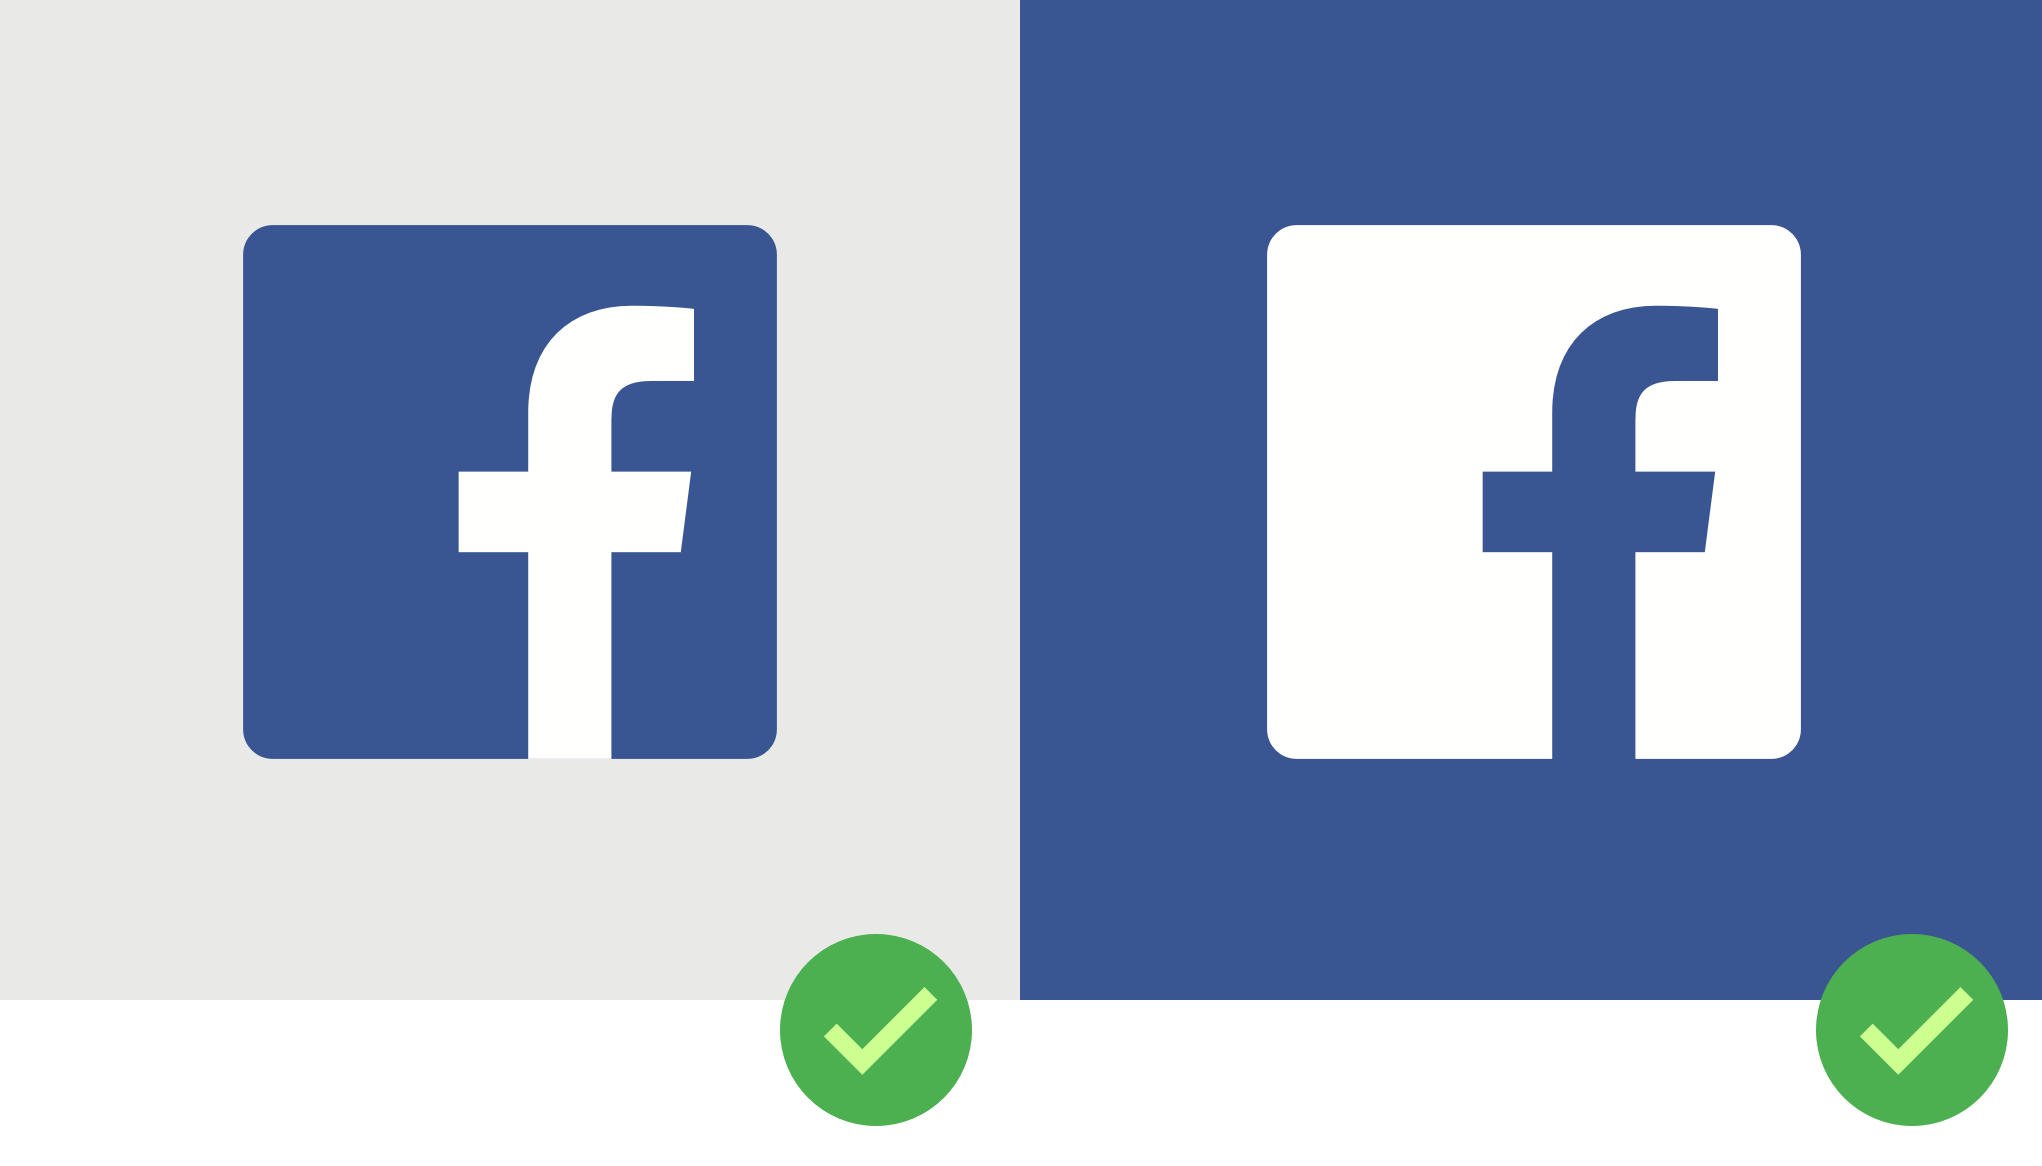 Facebook Icon Eps PNG - 104441